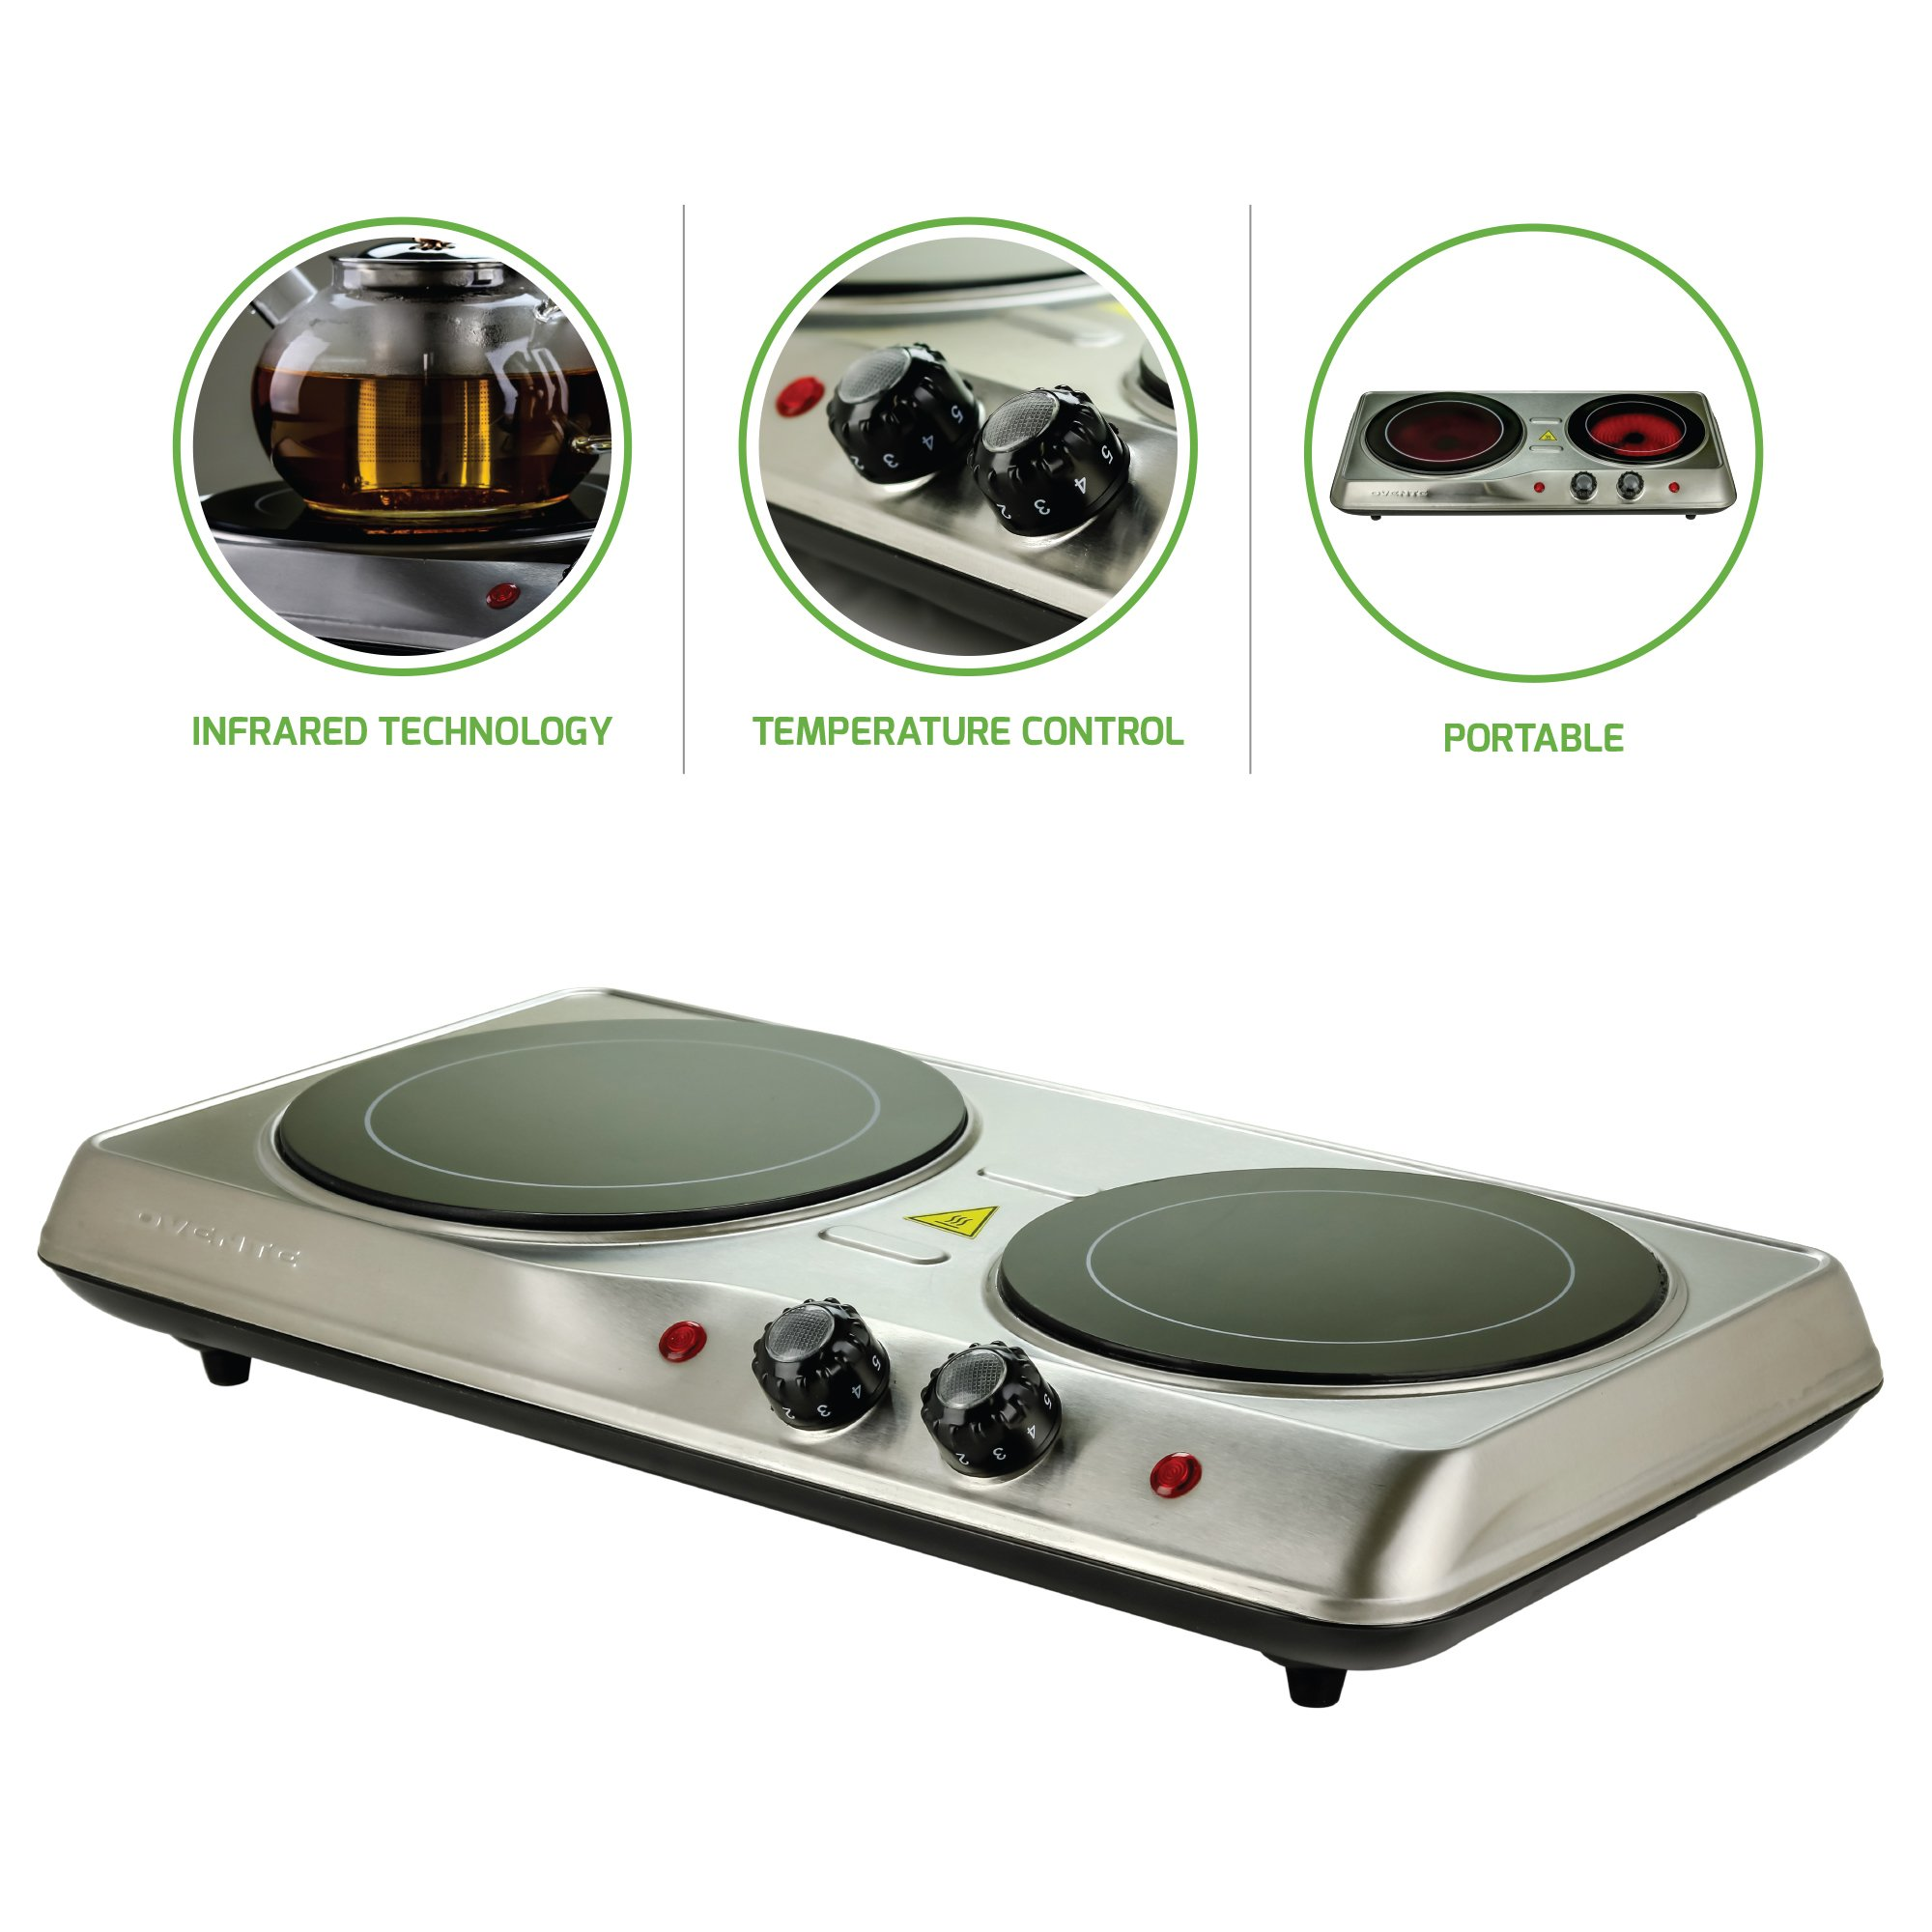 Ovente Countertop Burner, Infrared Ceramic Glass Double Plate Cooktop, Indoor and Outdoor Portable Stove, 1700 Watts (BGI102)